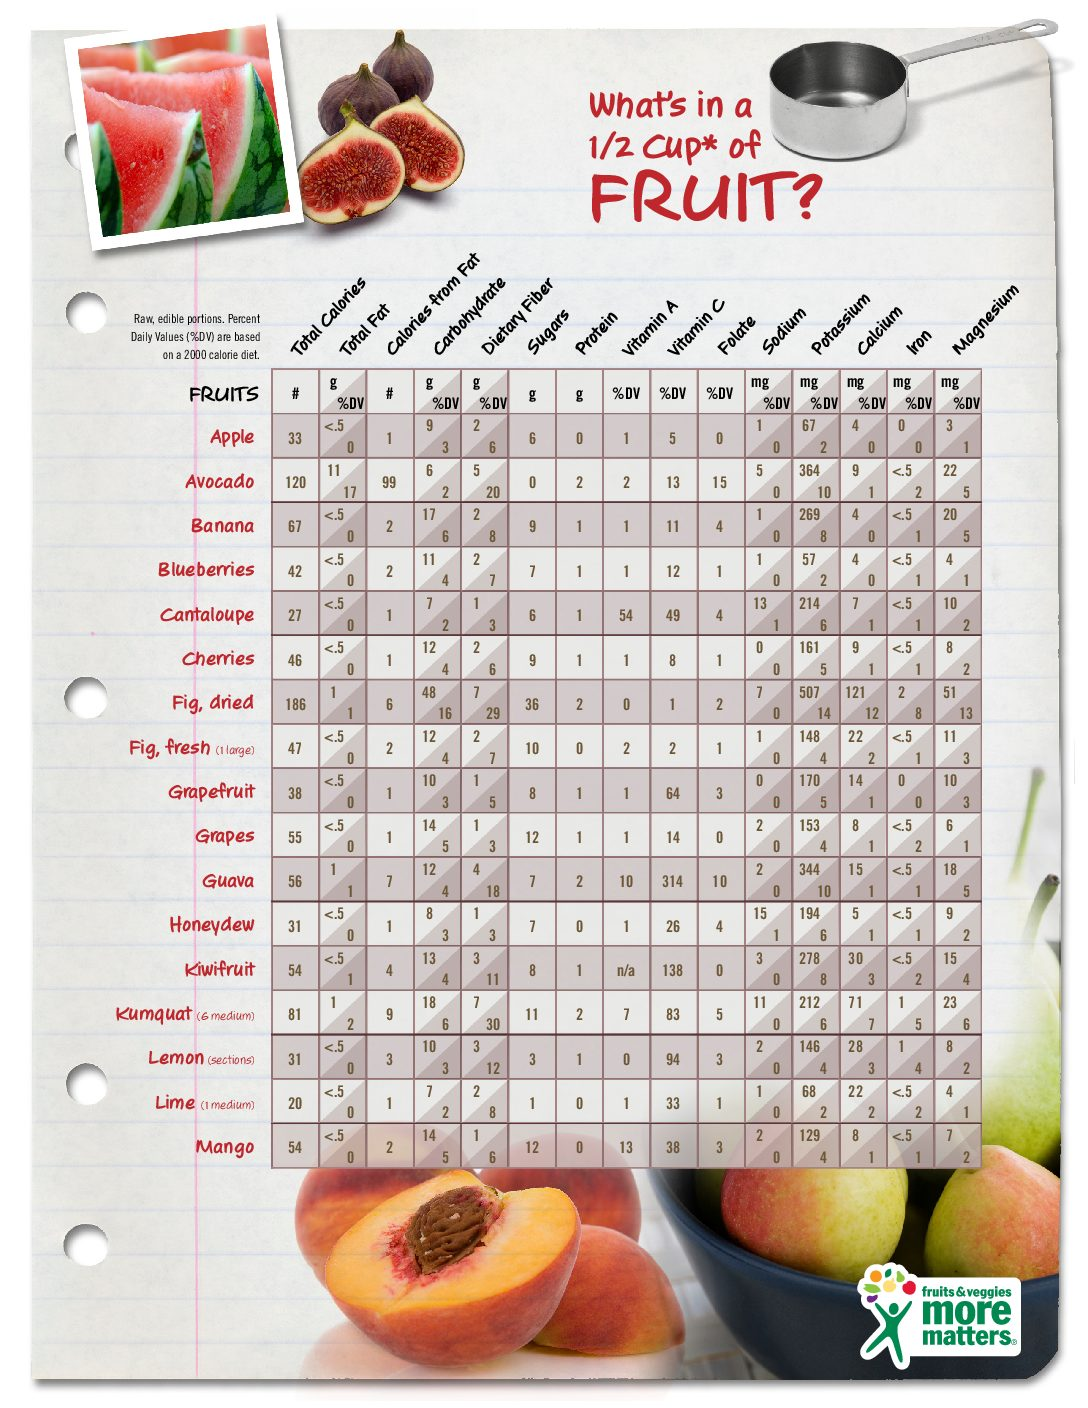 WhatsInAHalfCupGuide_Fruit-pdfjpg